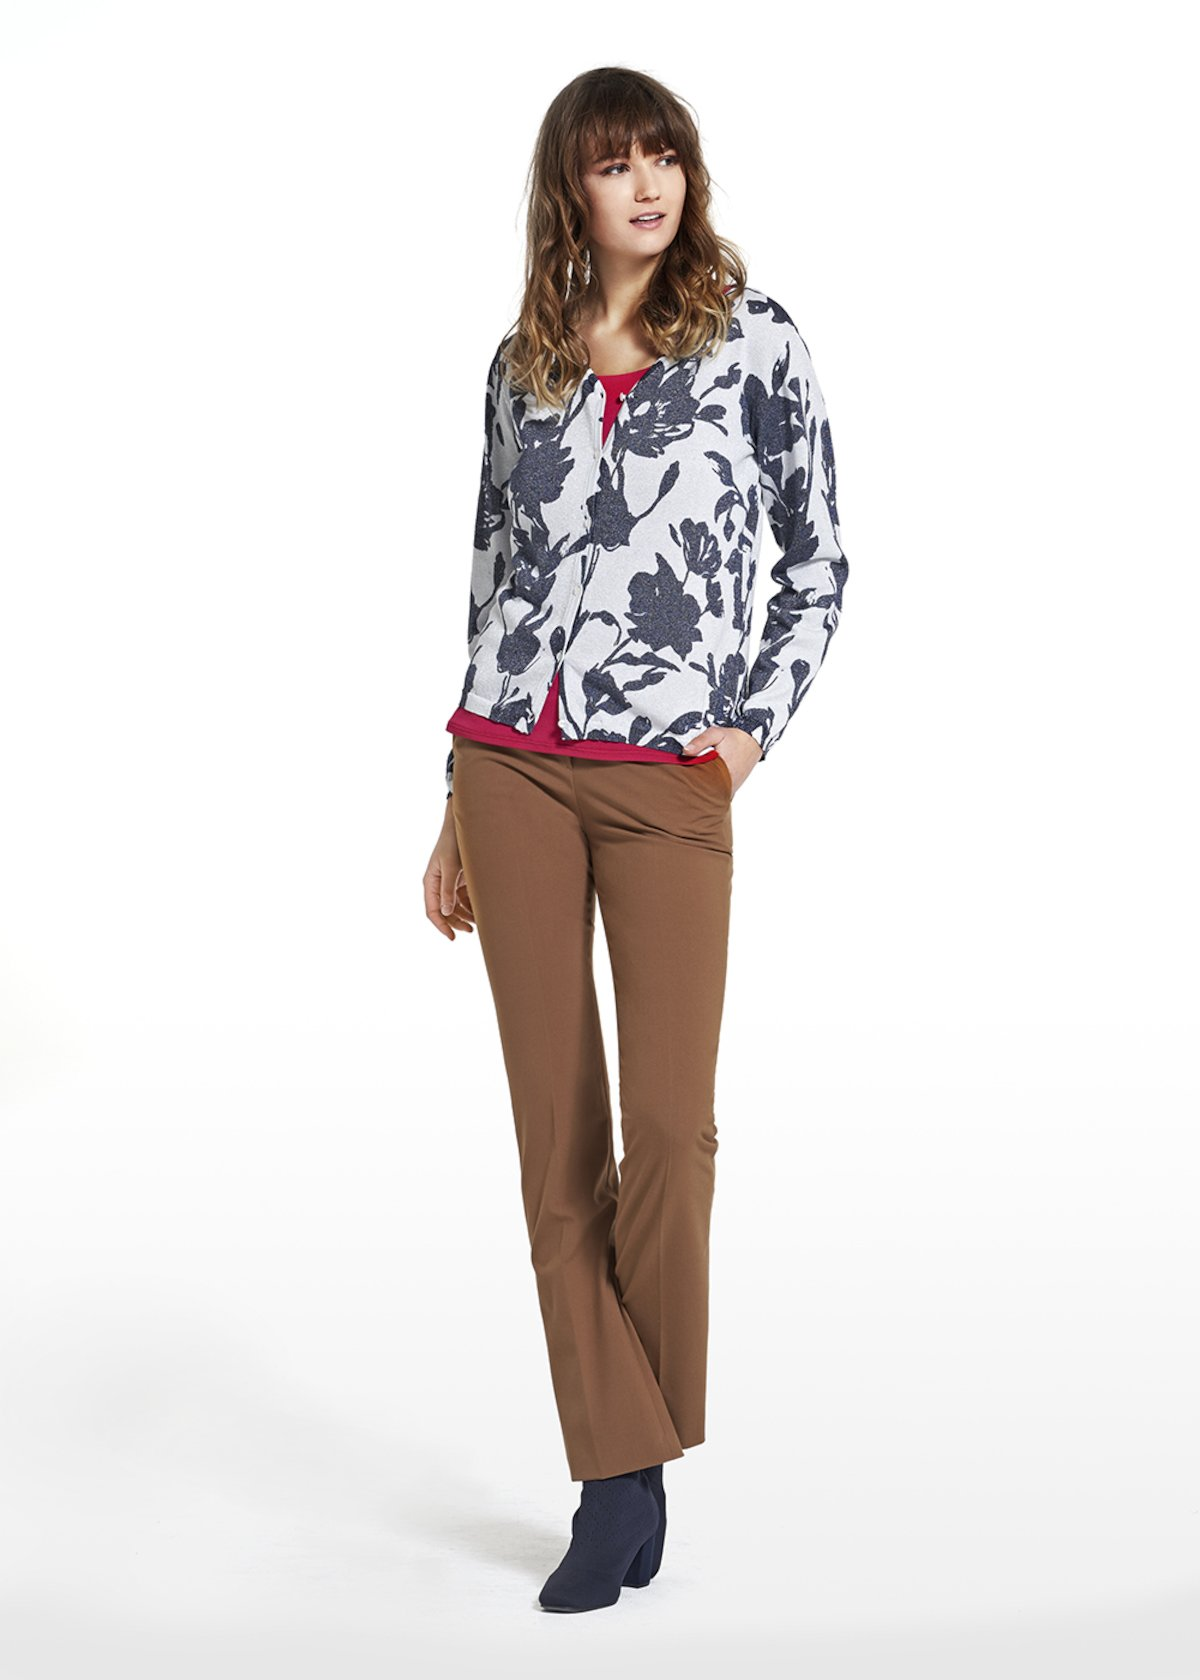 Cardigan Carly patterned flowers - White Fantasia - Woman - Category image